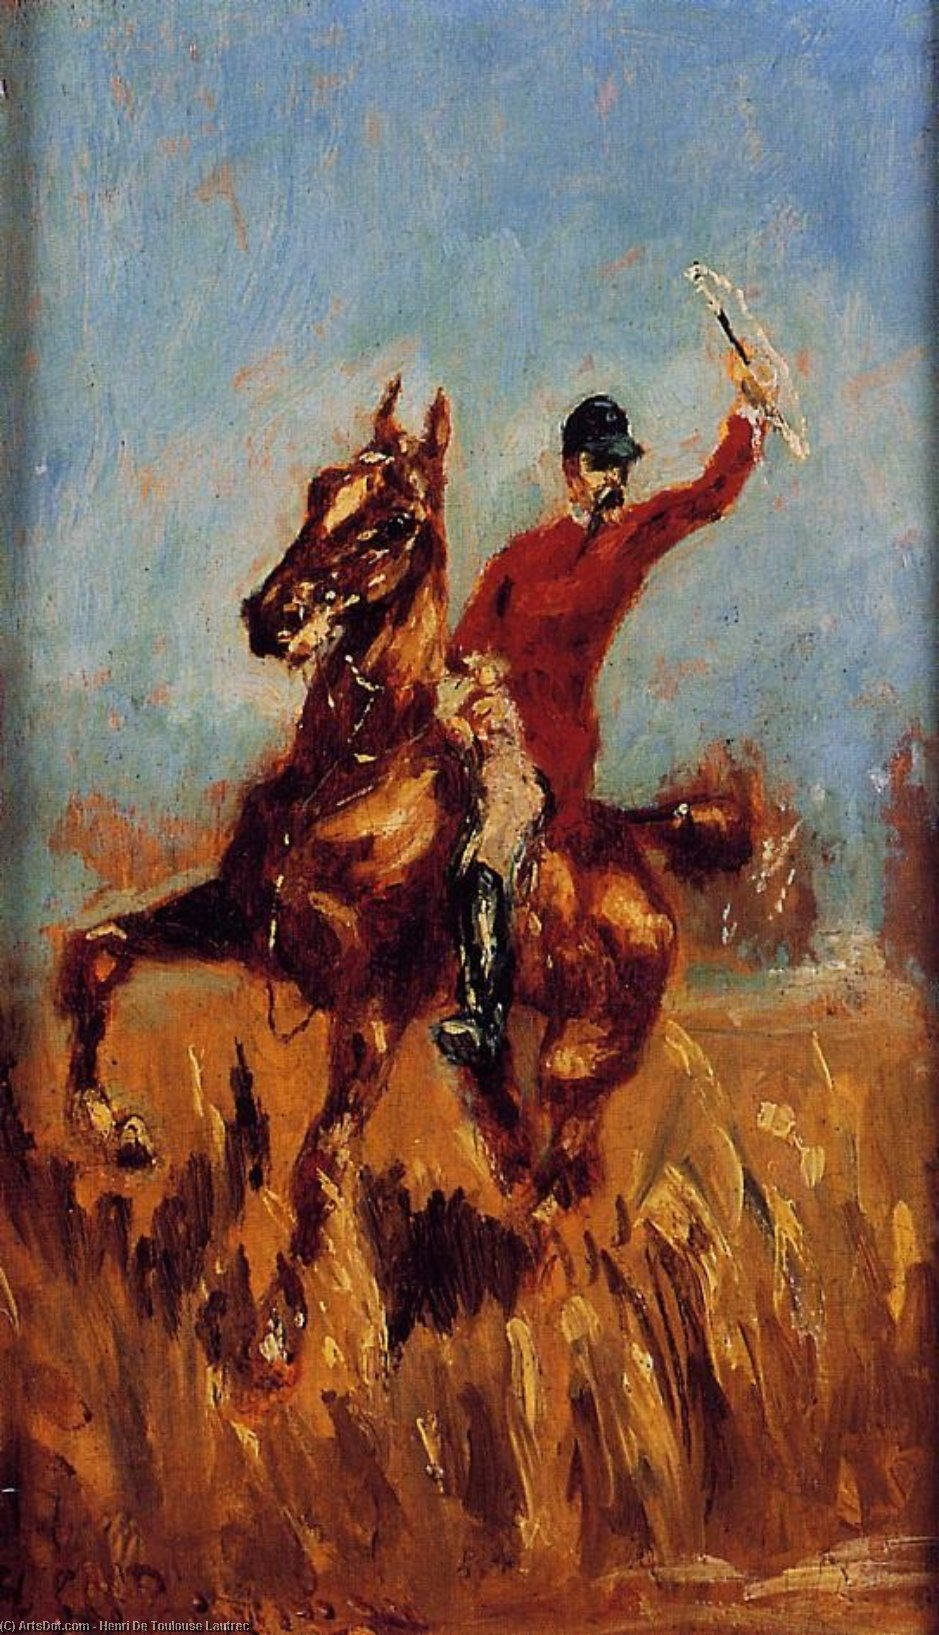 Master of the Hunt, Oil On Panel by Henri De Toulouse Lautrec (1864-1901, France)